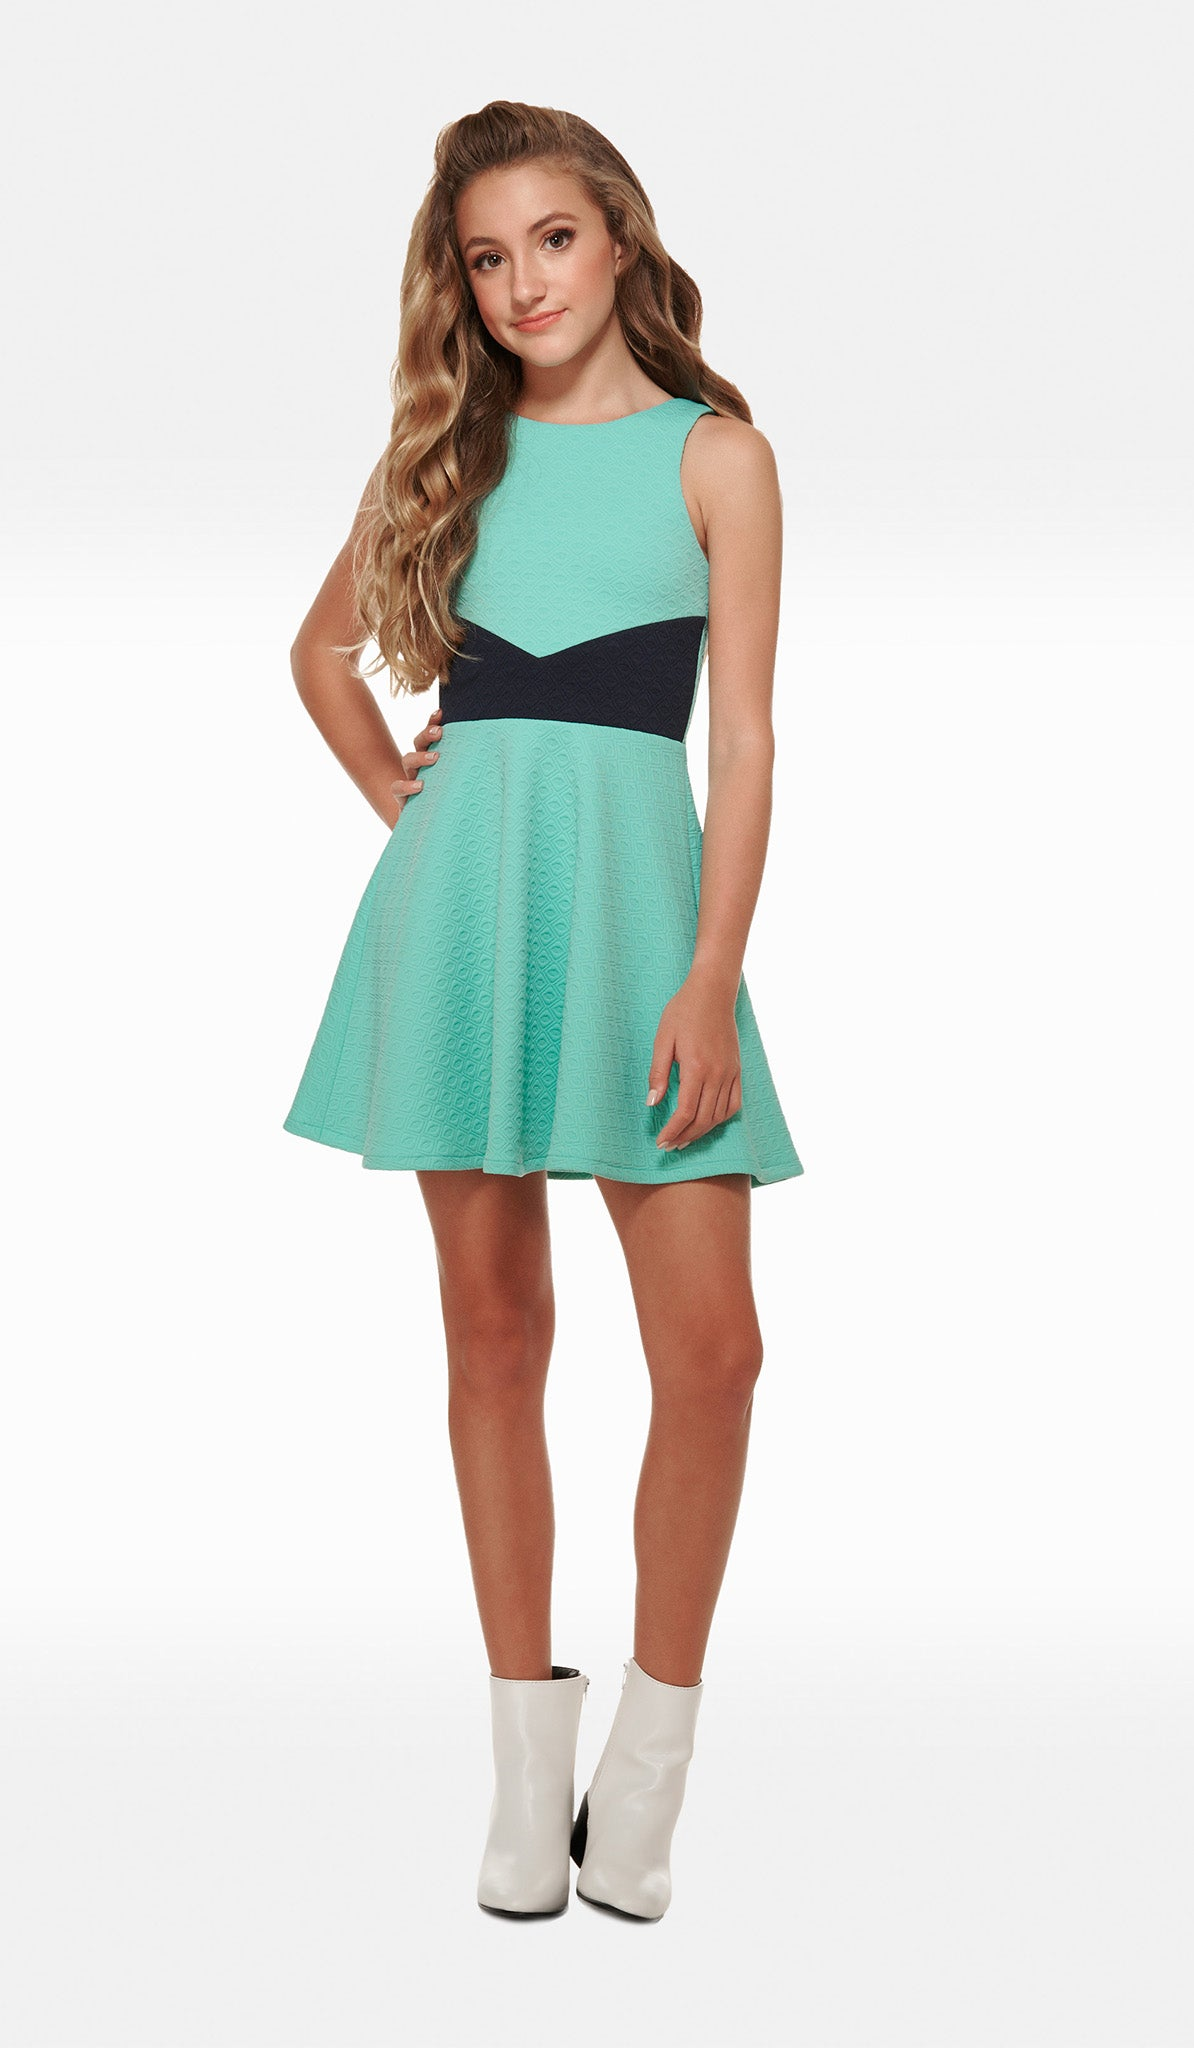 The Sally Miller Lily Dress - Mint textured stretch knit skater dress with exposed back silver zipper with circle ring